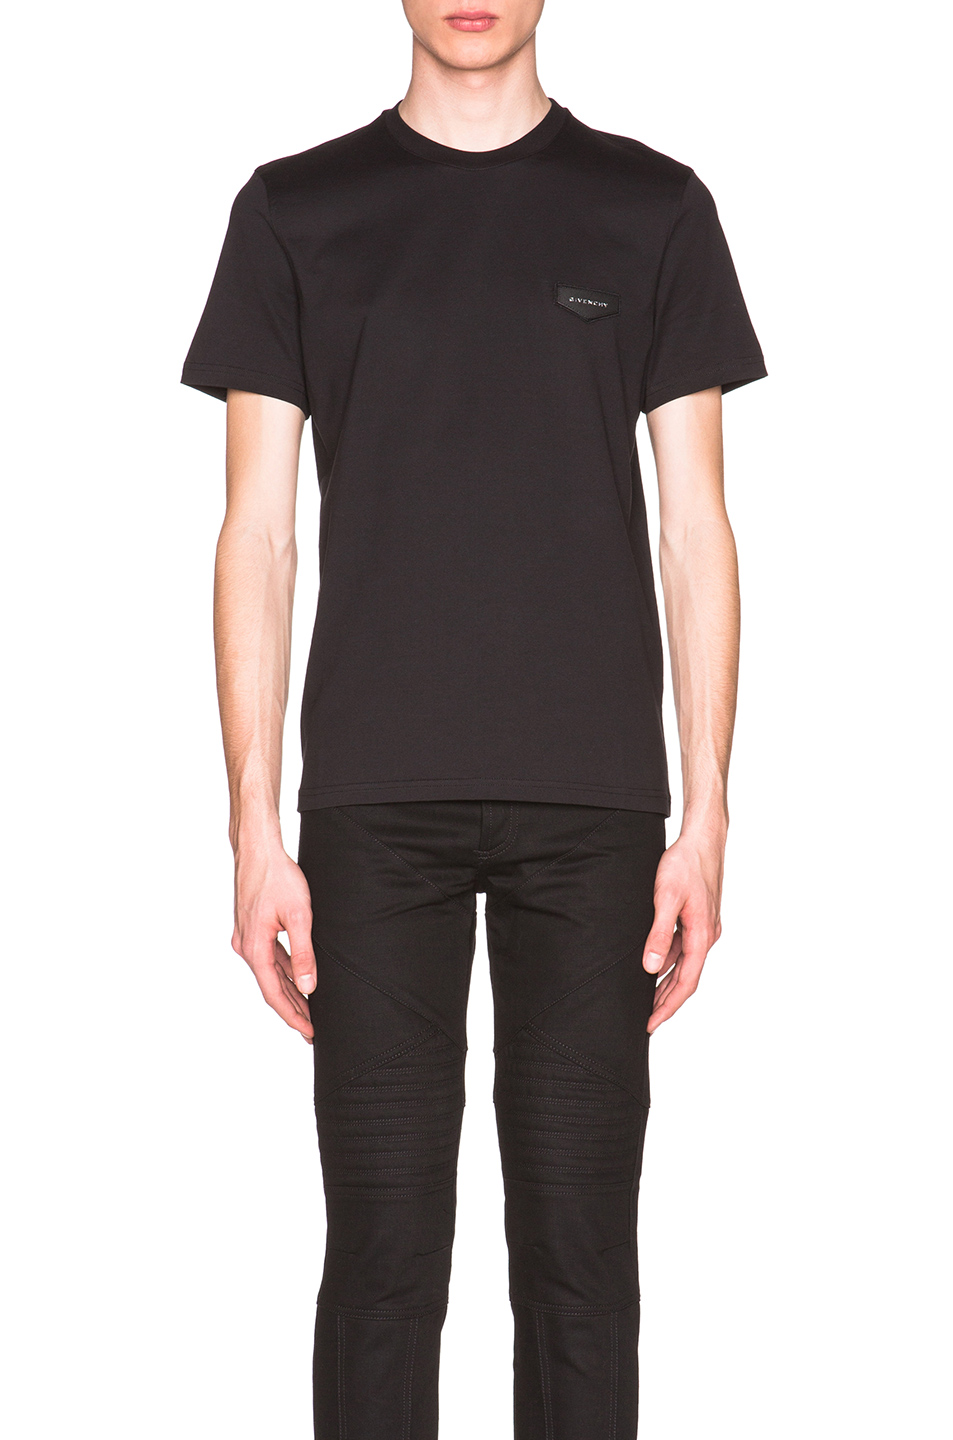 Givenchy Cuban Fit Patch Tee in Black